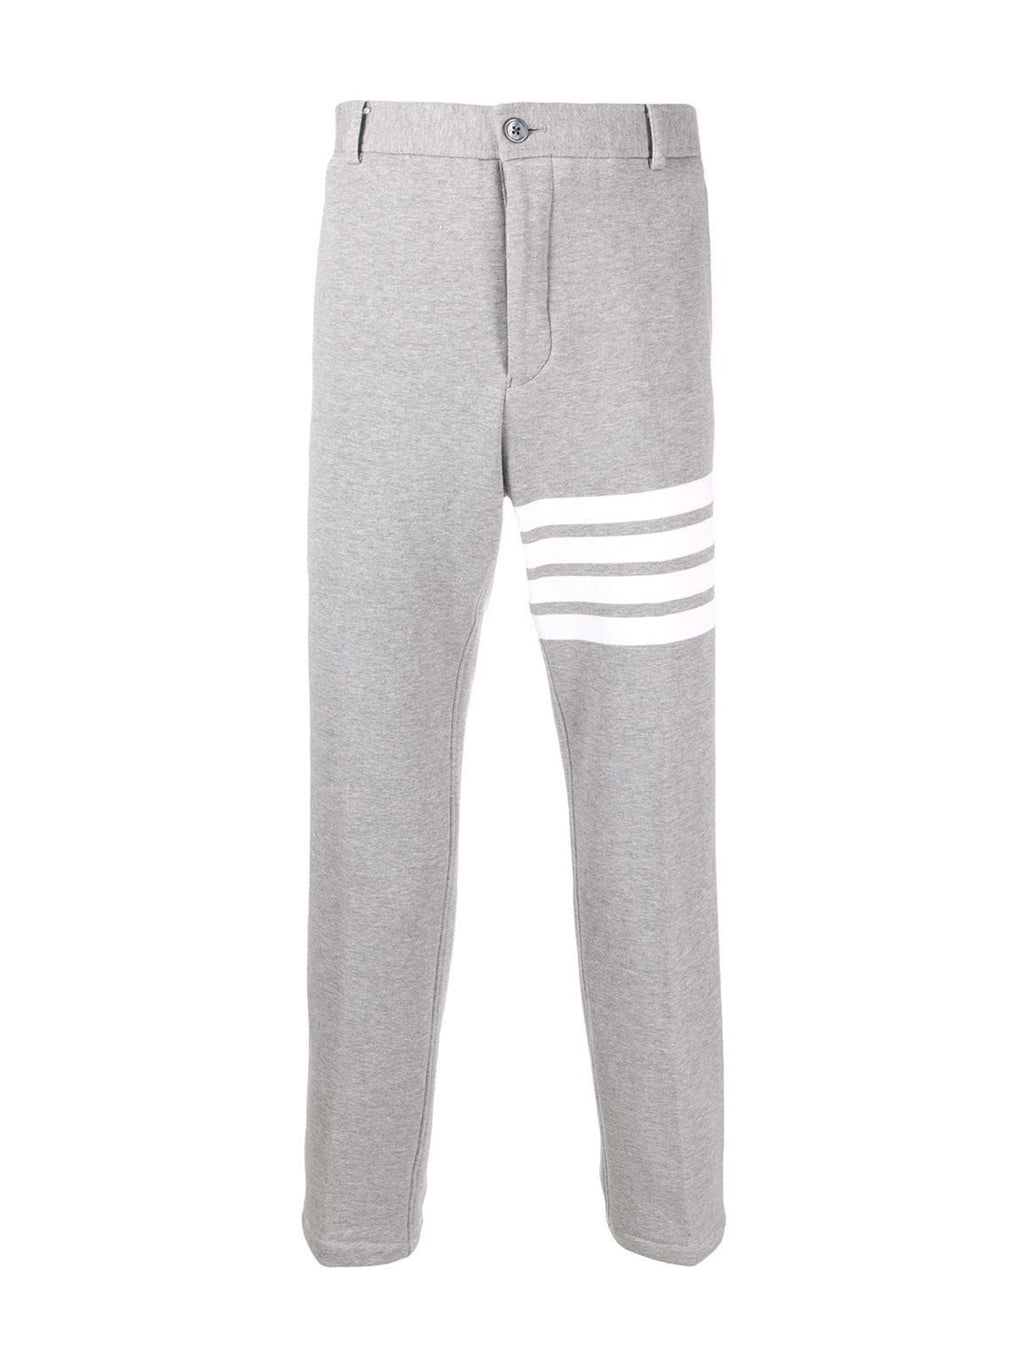 Grey 4-Bar Chino Trousers